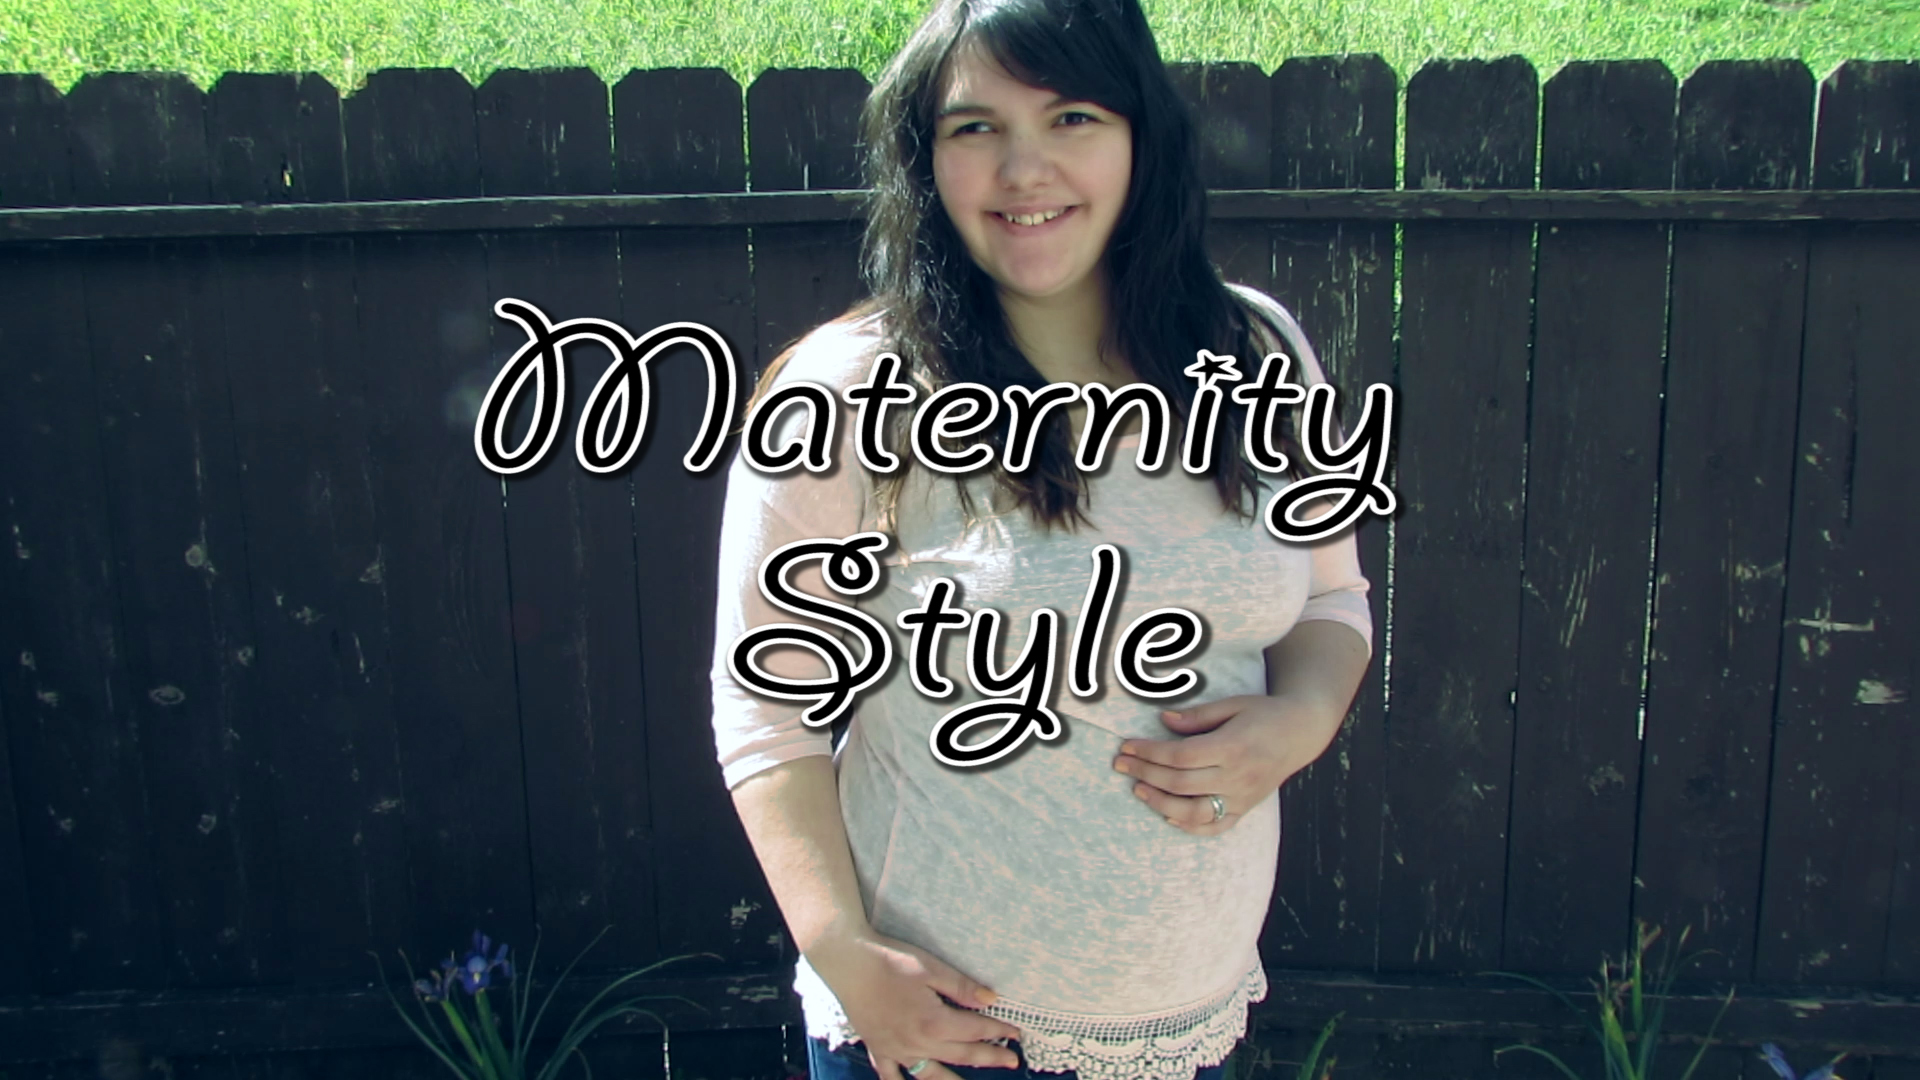 maternity lookbook maggie winterton youtube video vlogger christian lifestyle